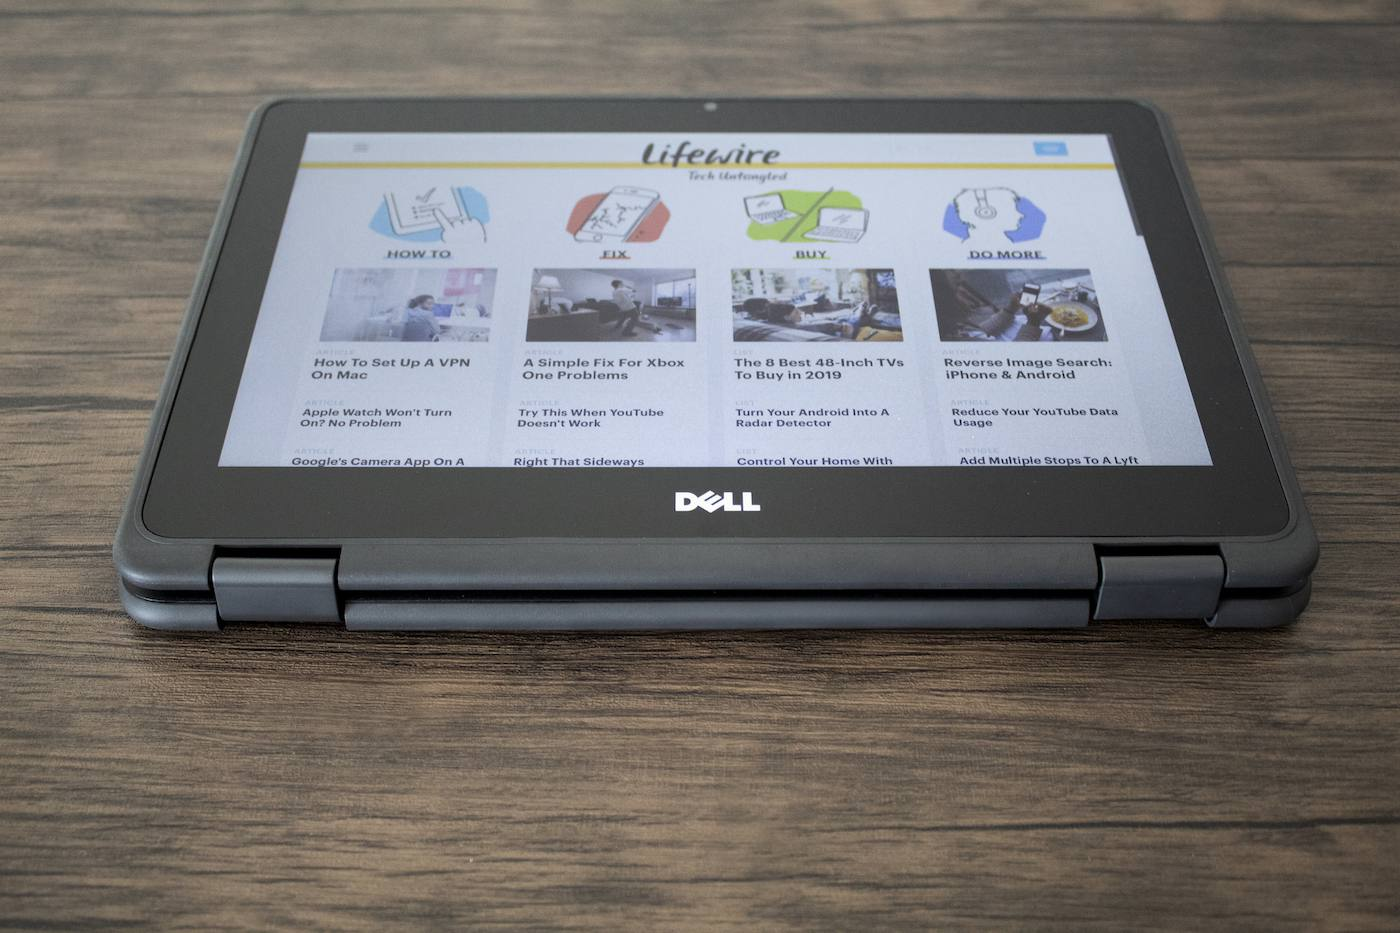 Dell Inspiron Chromebook 11 Review: Good Durability, Battery